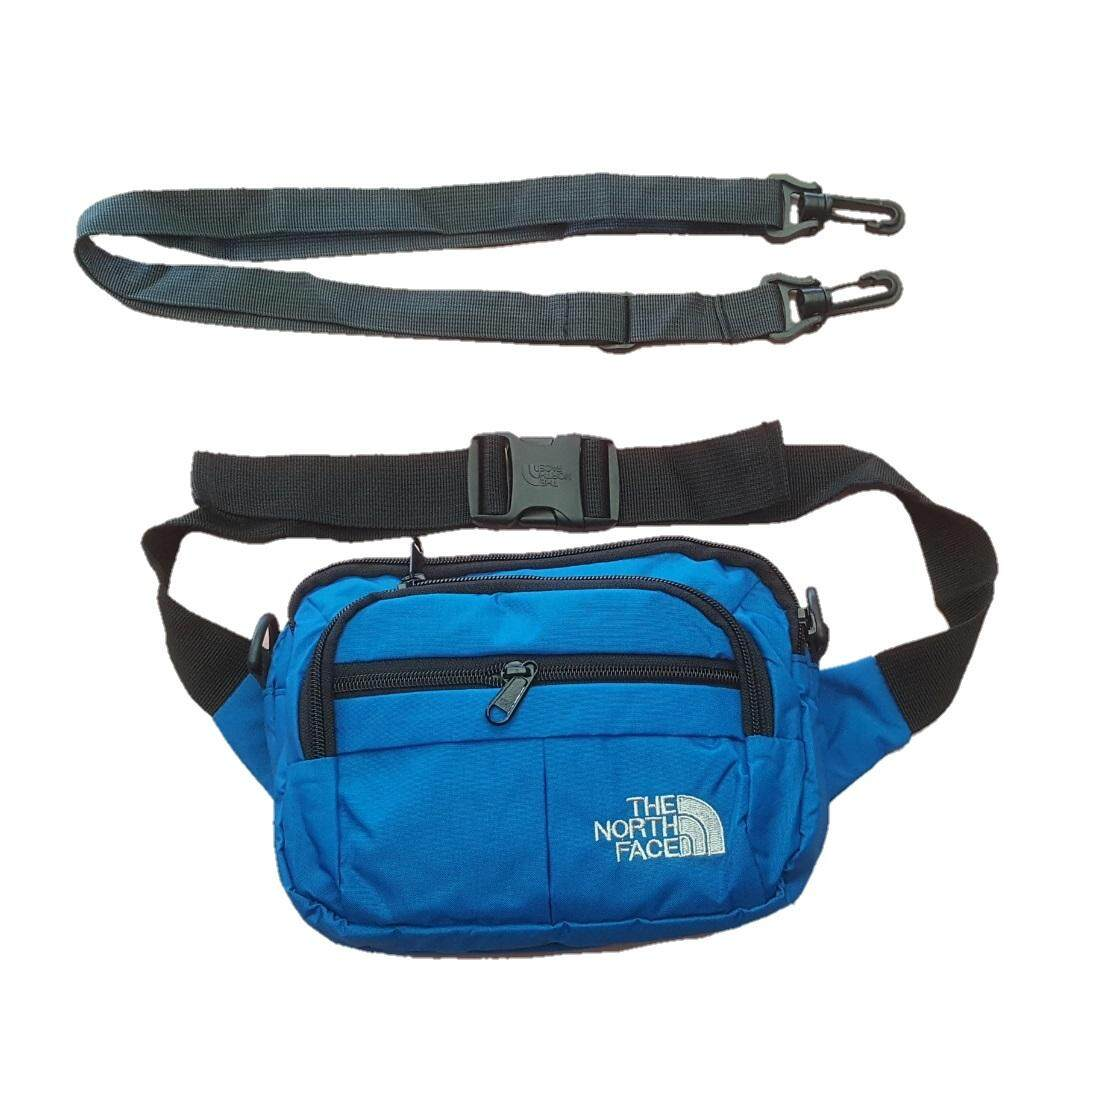 c084254bc The North Face Pouch Bag cum Sling (M)